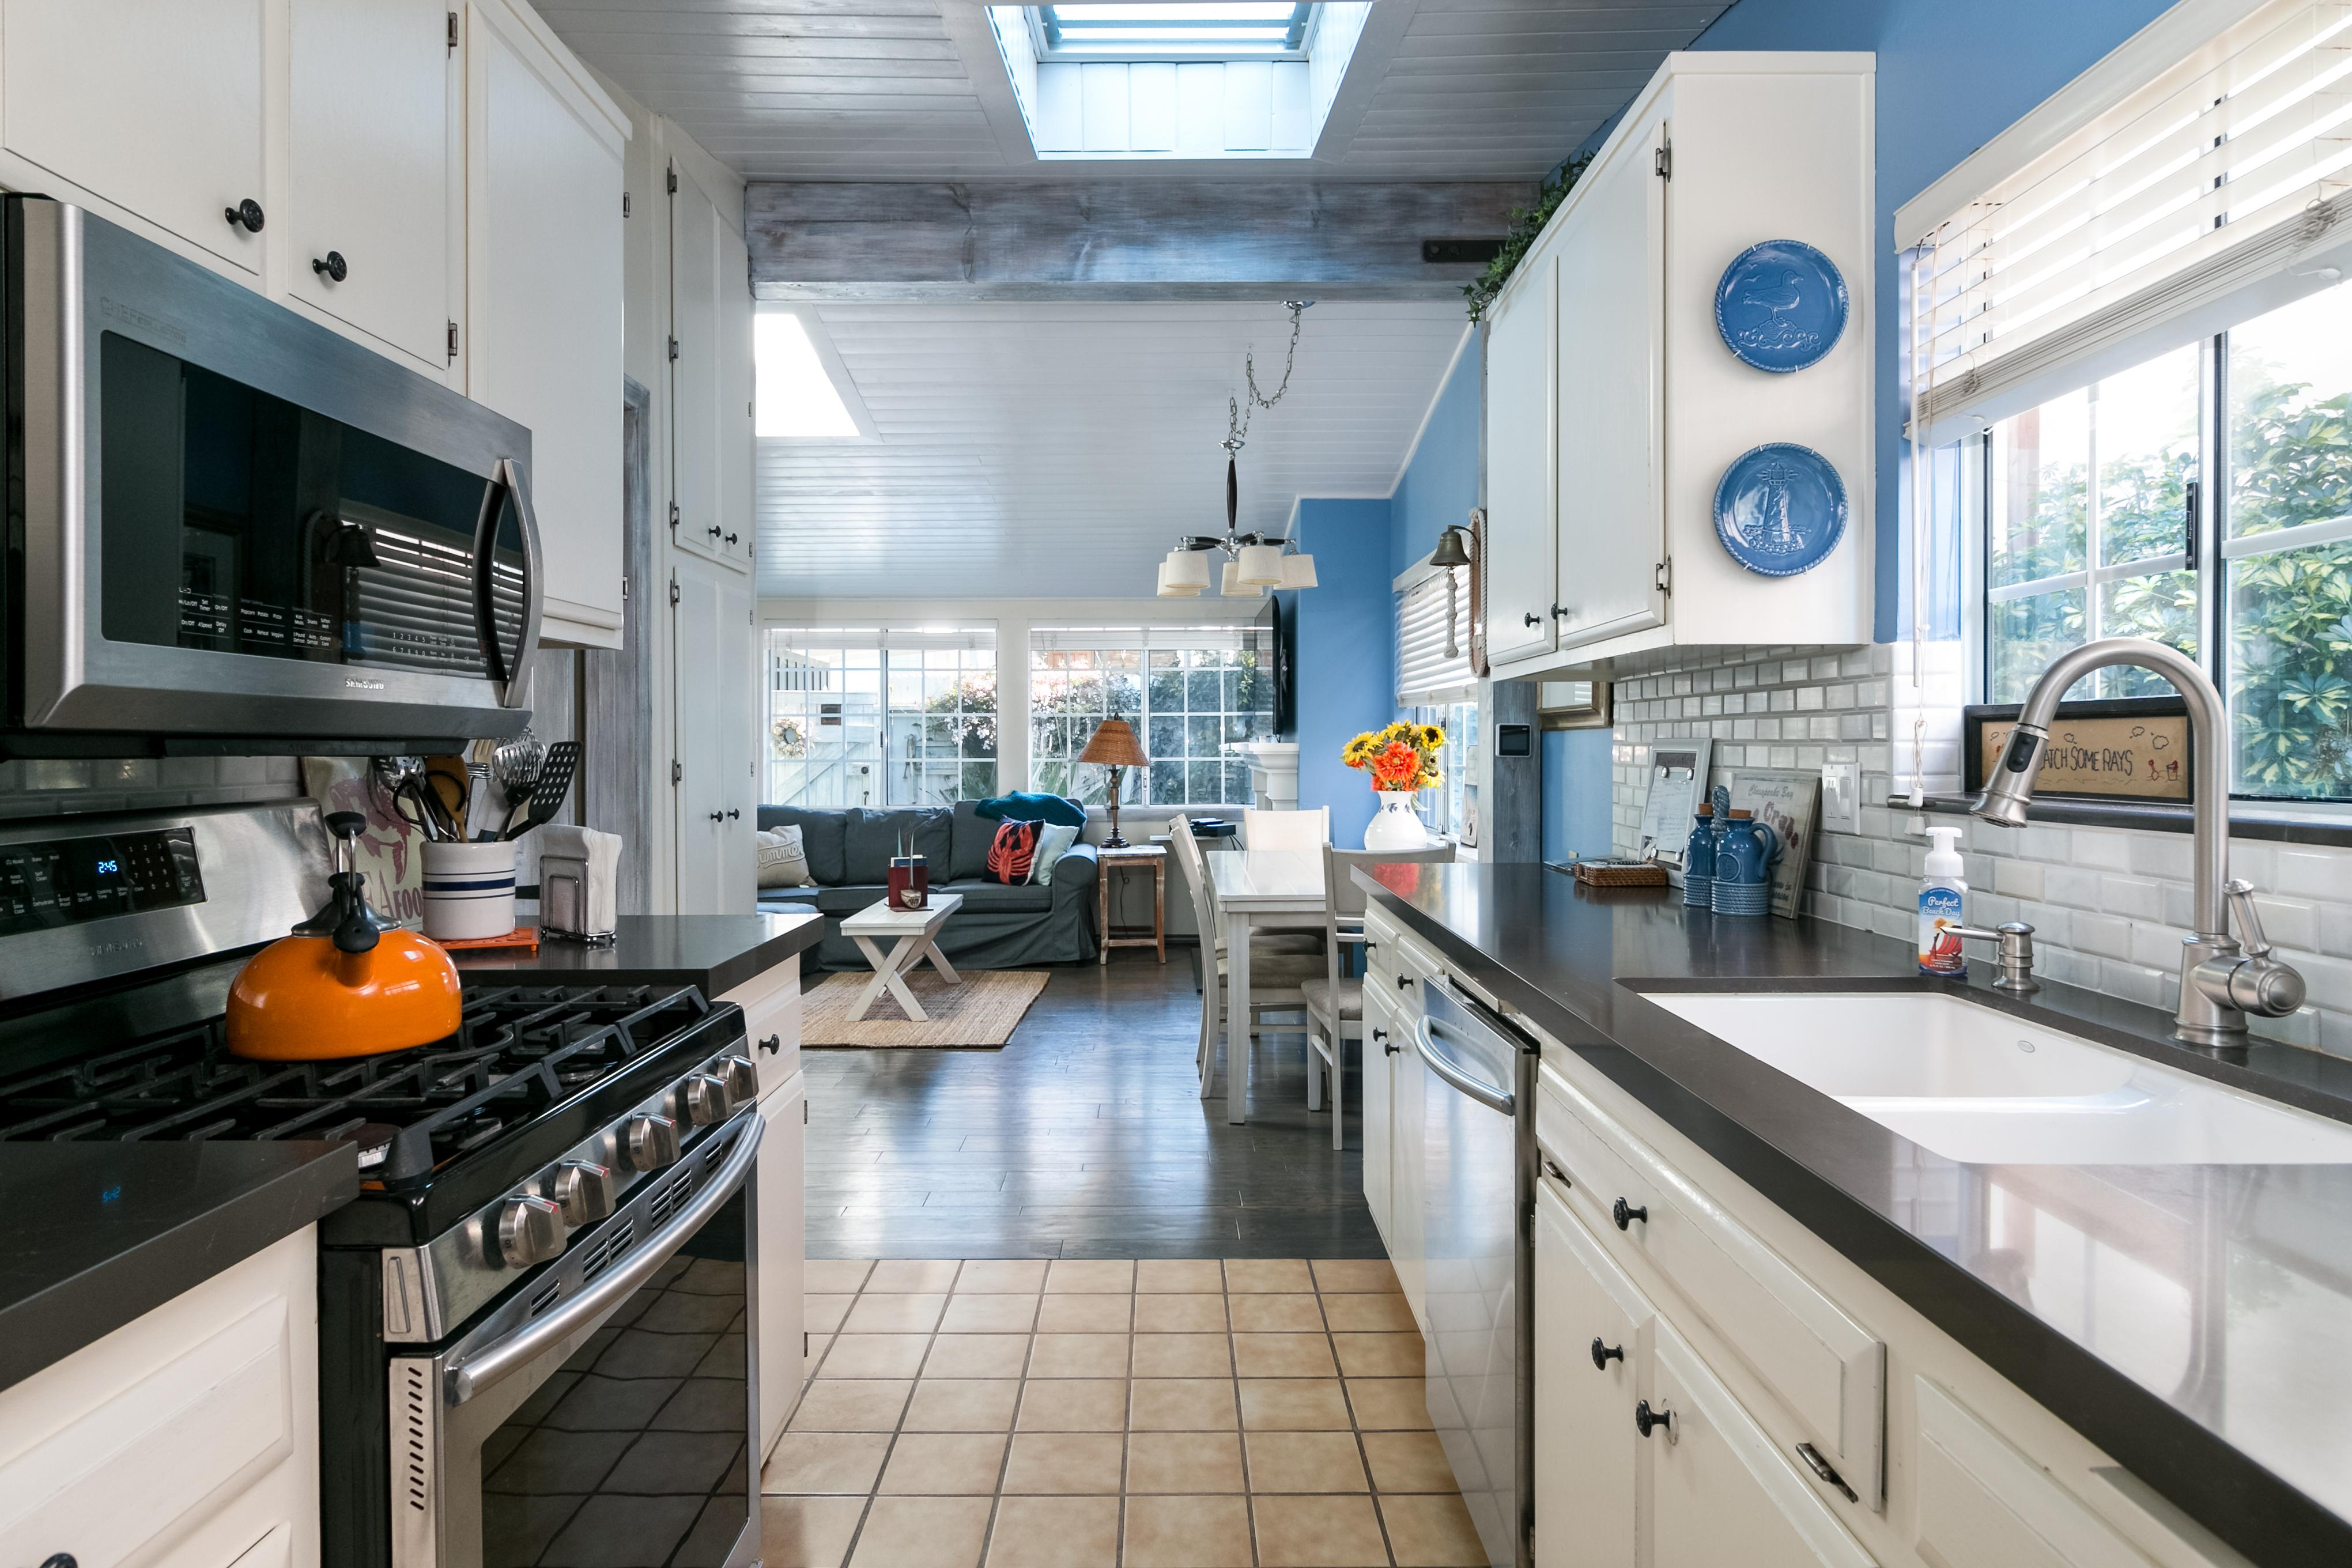 White tile backsplash adds to a fresh vibe in the kitchen.